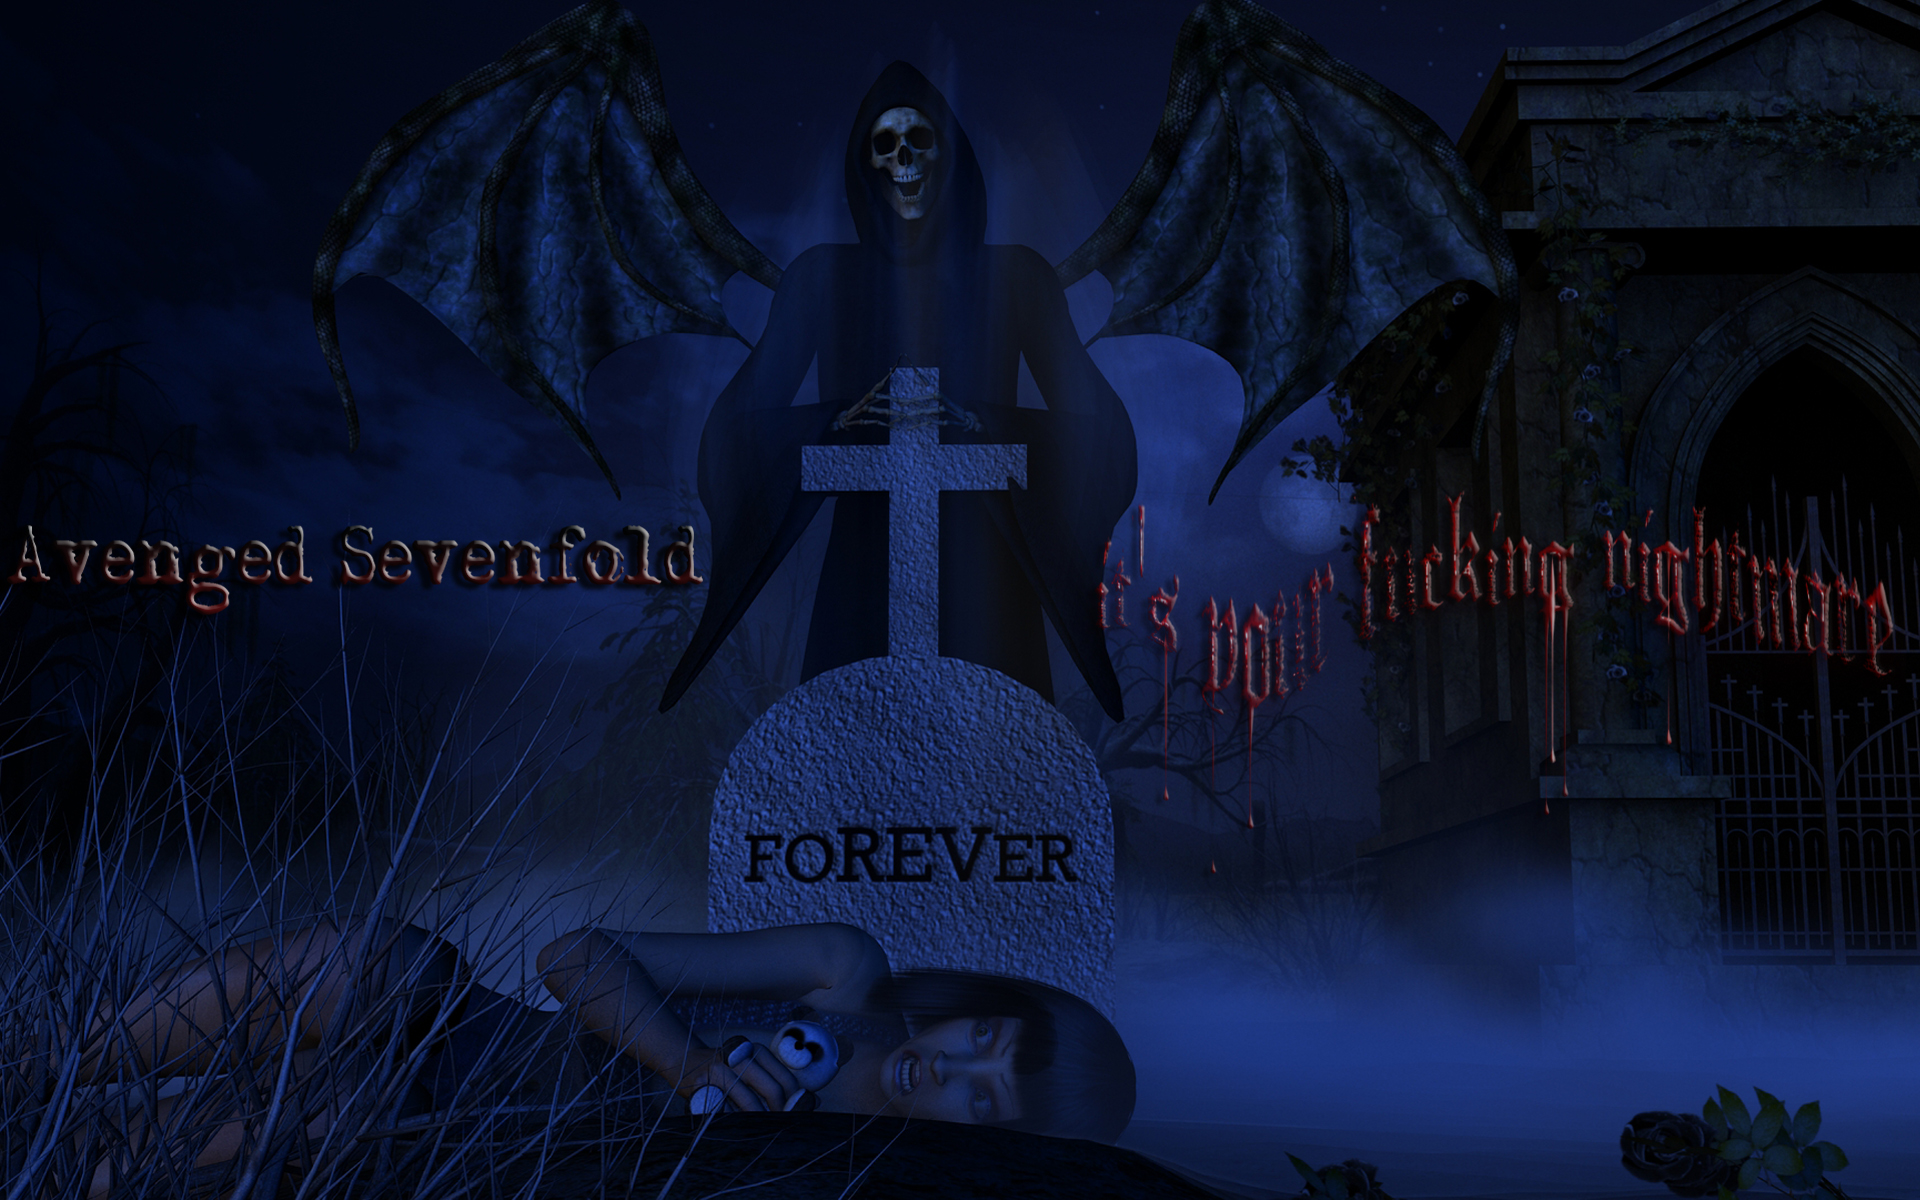 avenged sevenfold wallpapers for iphone